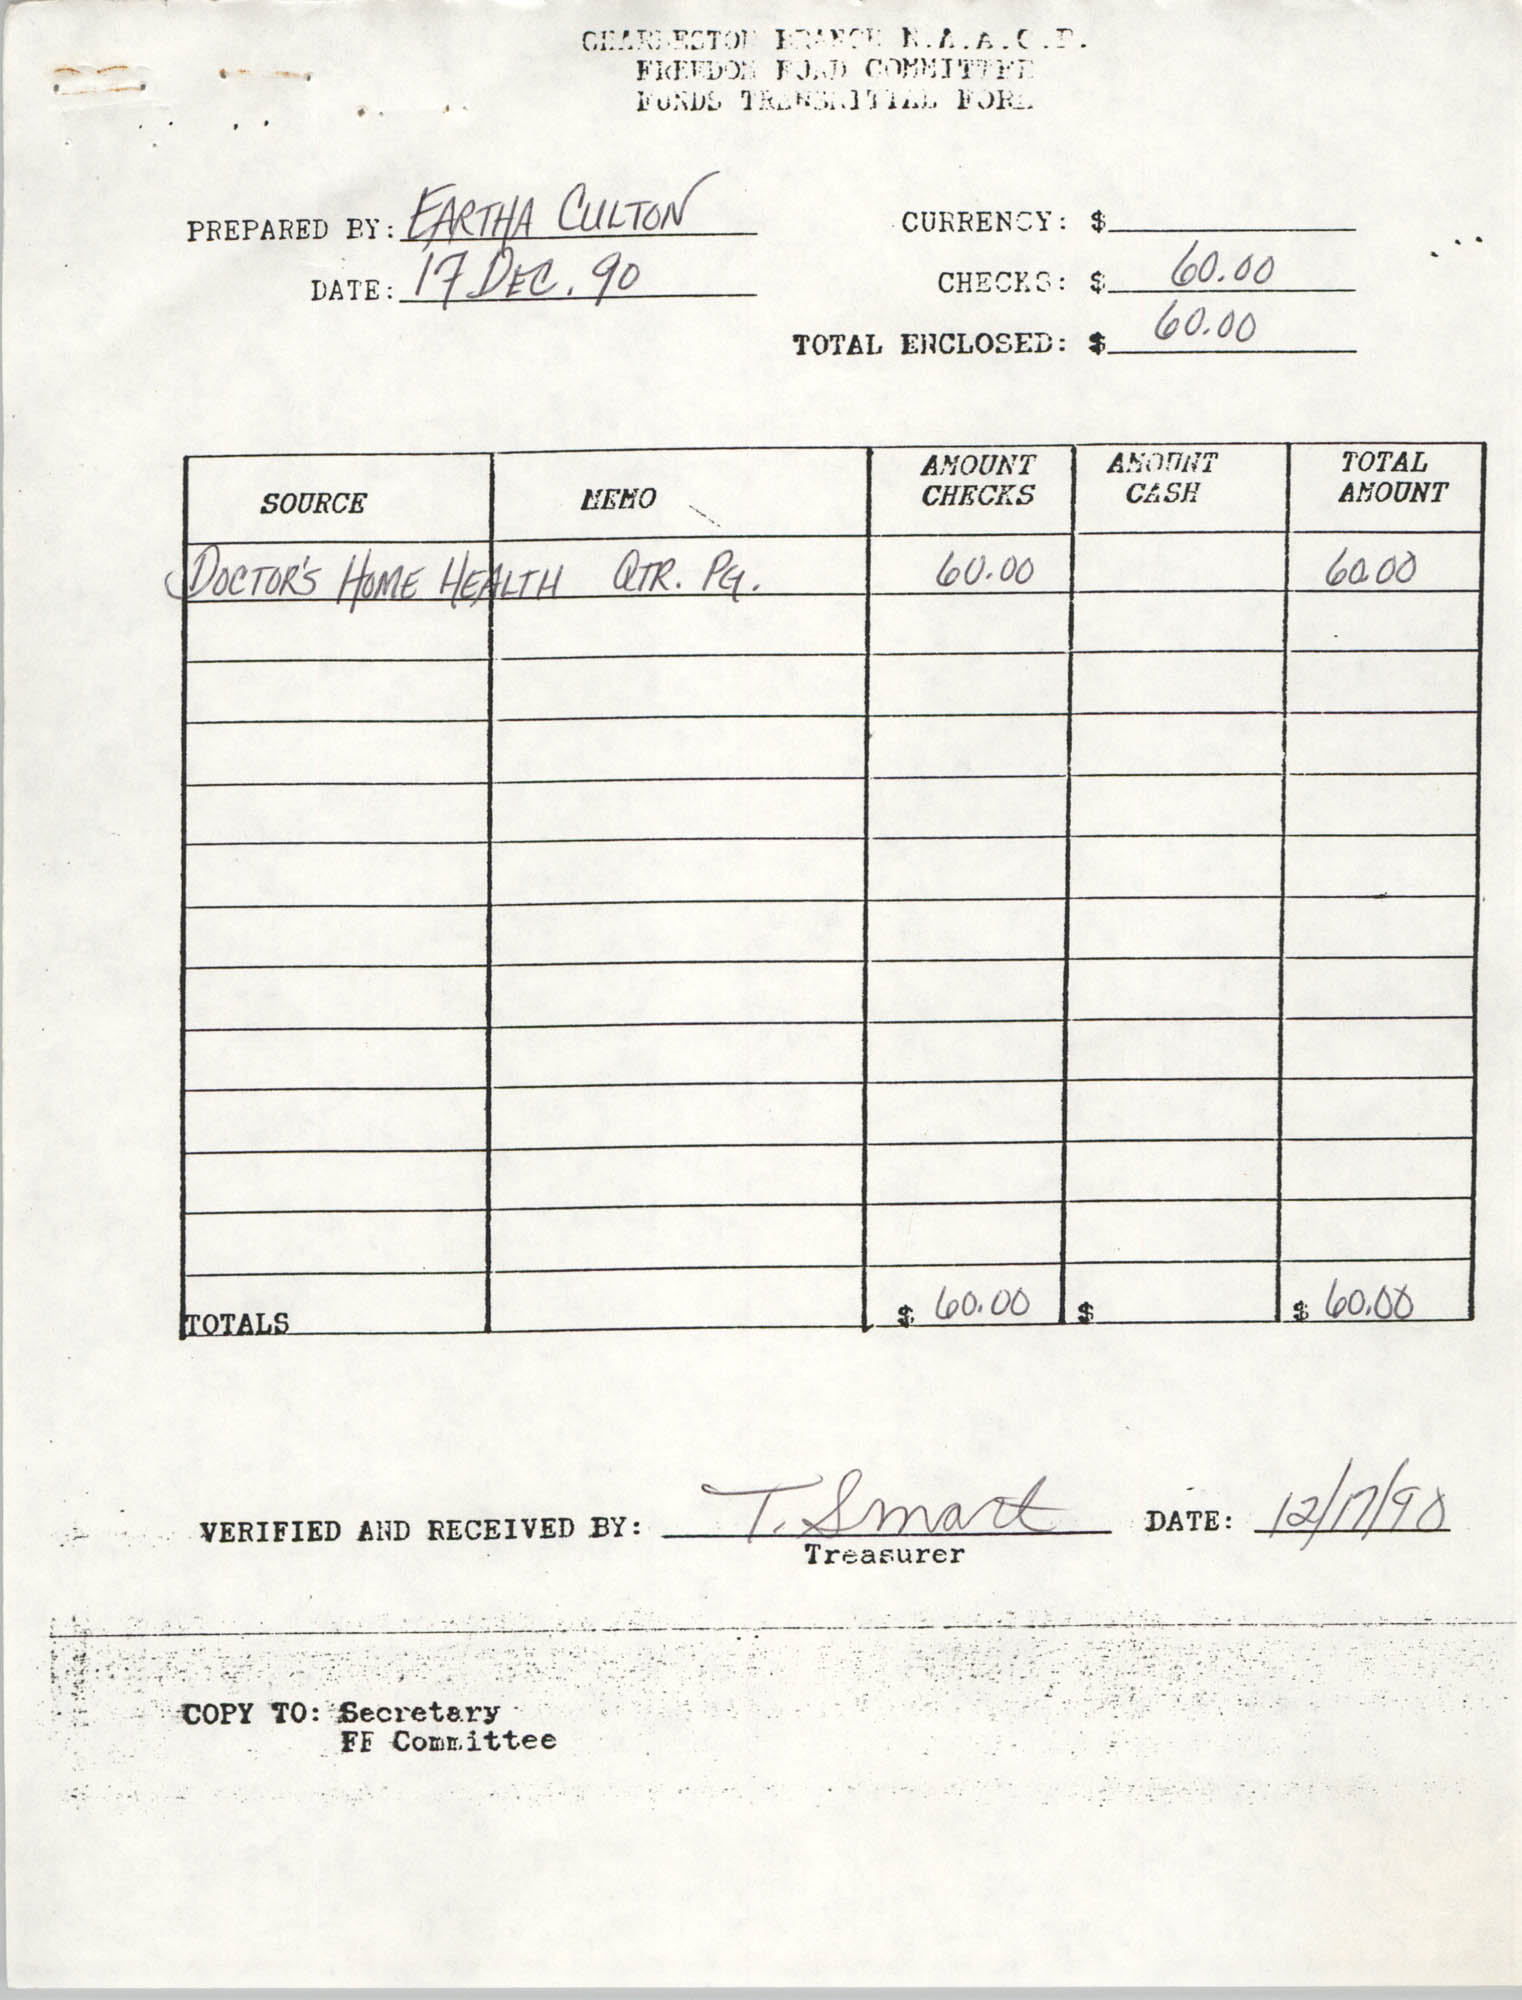 Charleston Branch of the NAACP Funds Transmittal Forms,  January 1991, Page 1